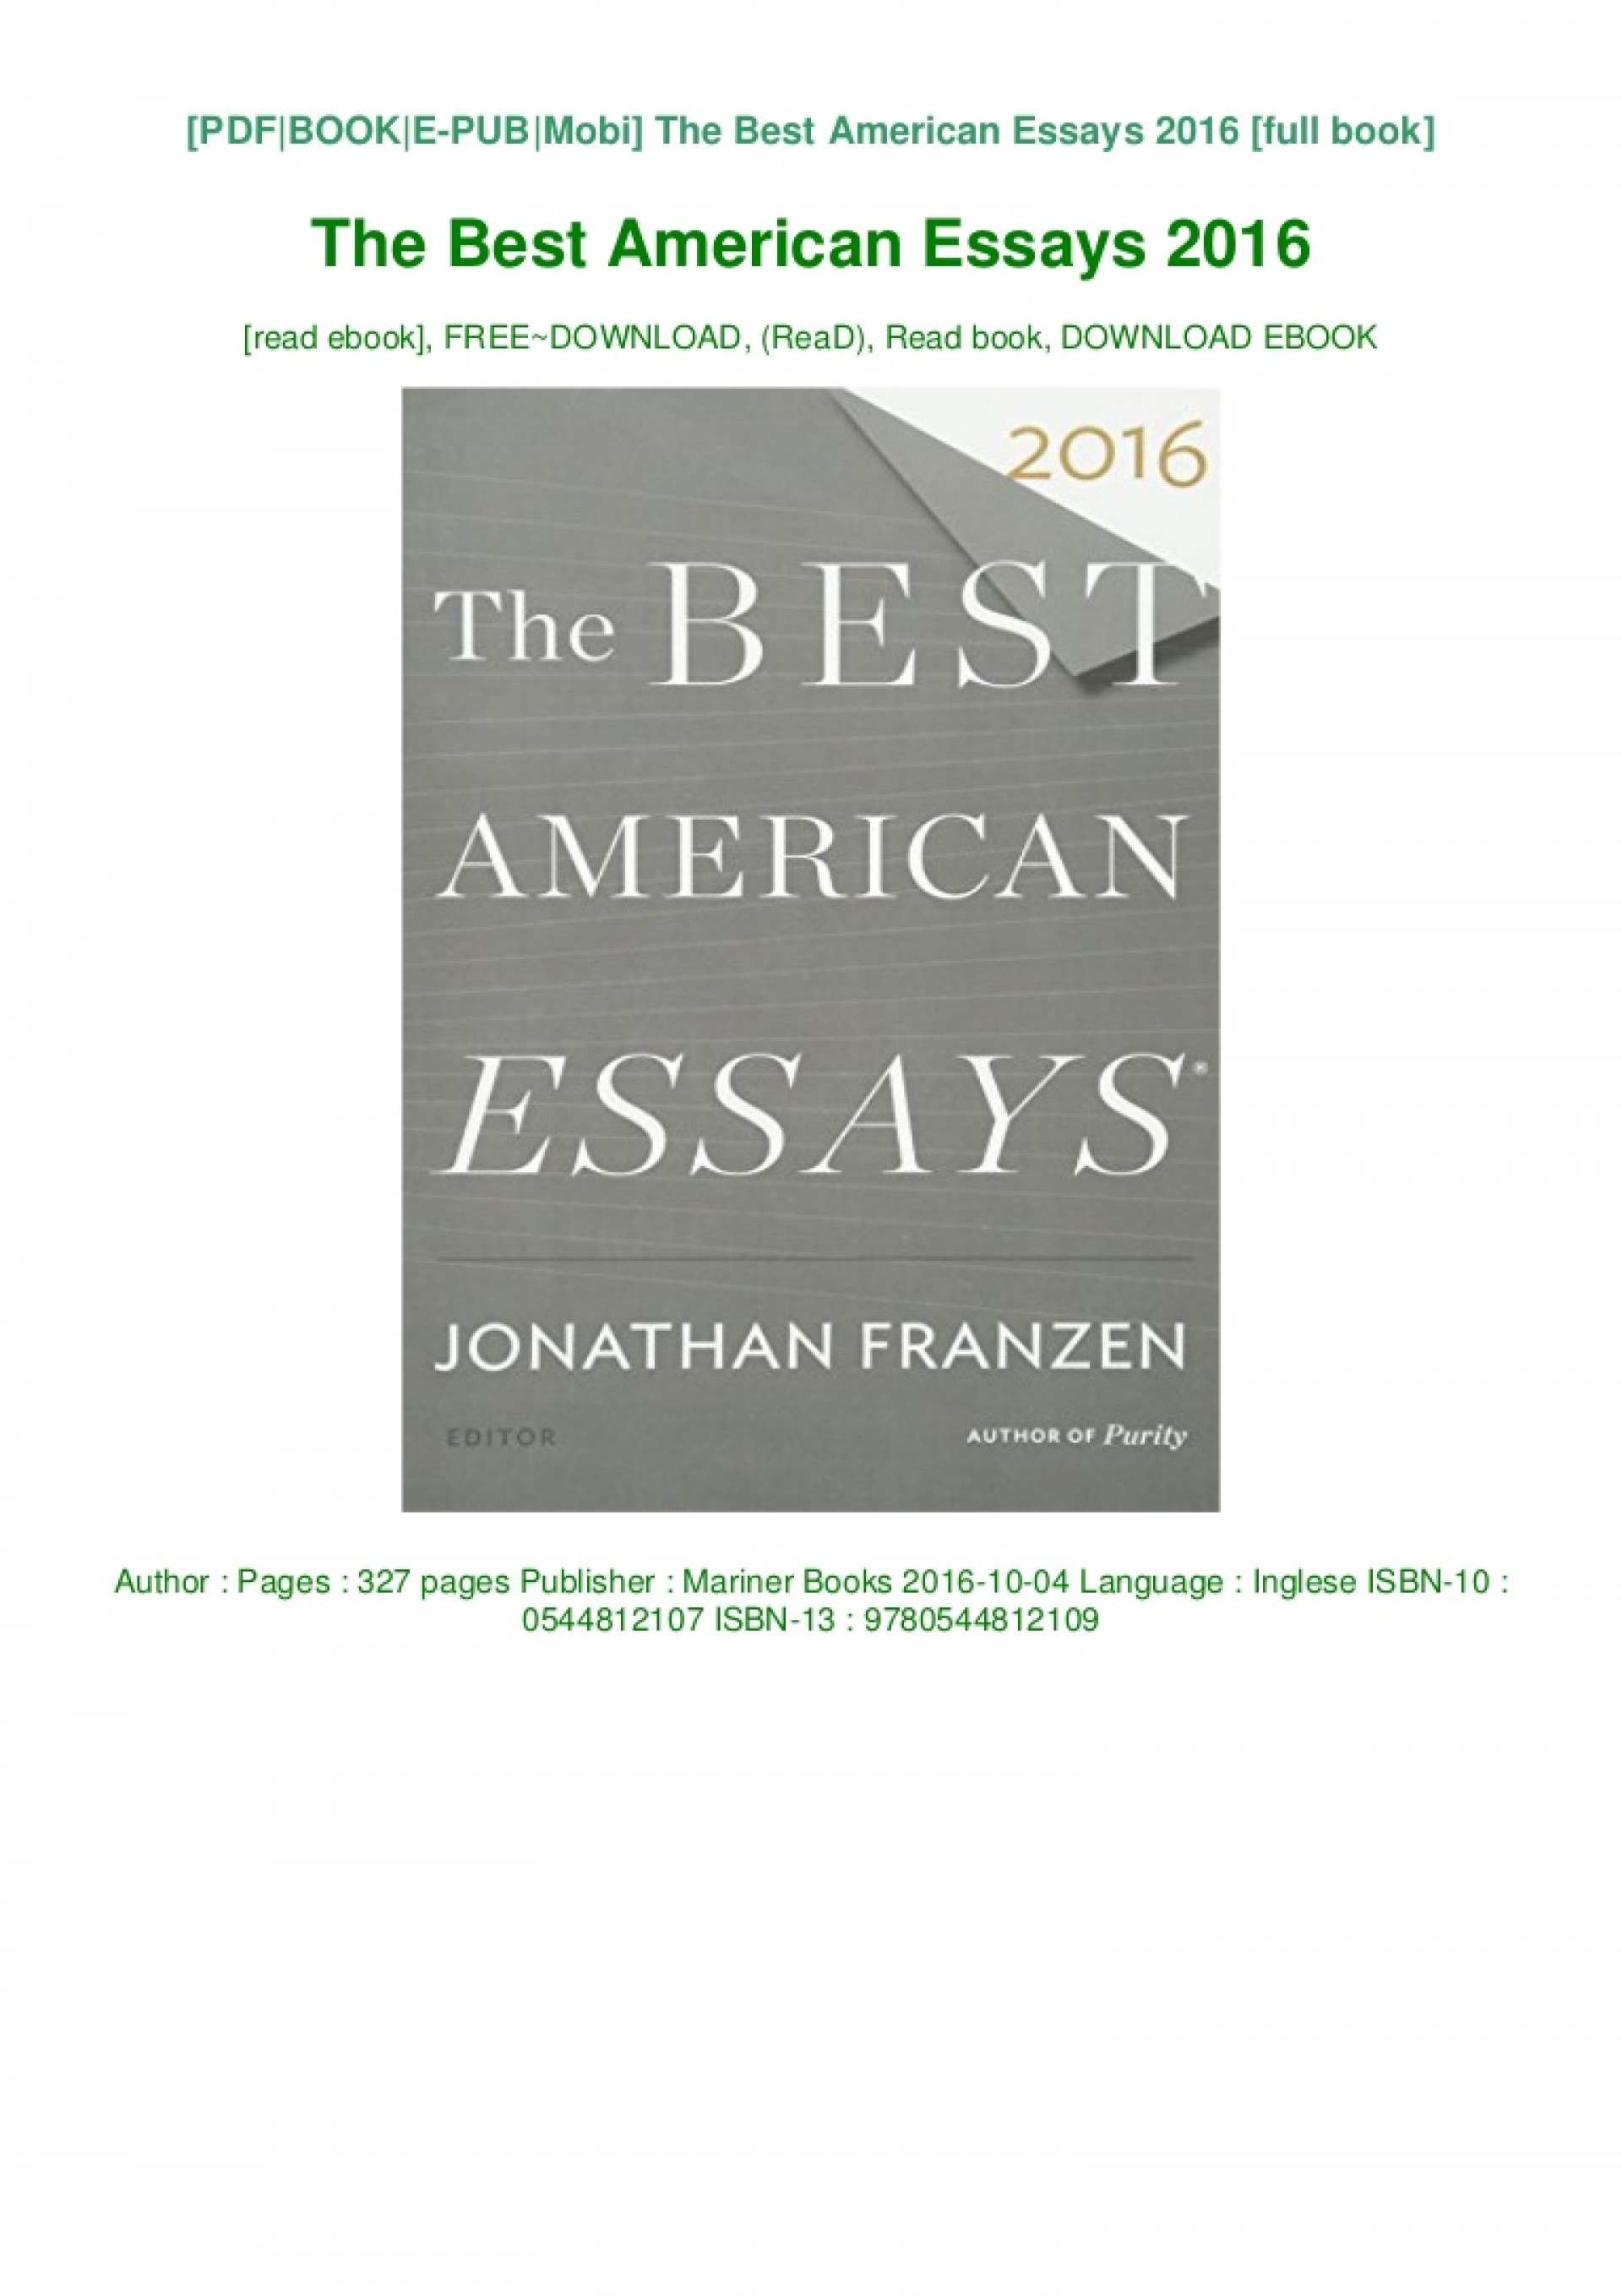 014 The Best American Essays Essay Example Download Pdf Epub Audiobook Ebook Thumbnail Wonderful Of Century Table Contents 2013 1920